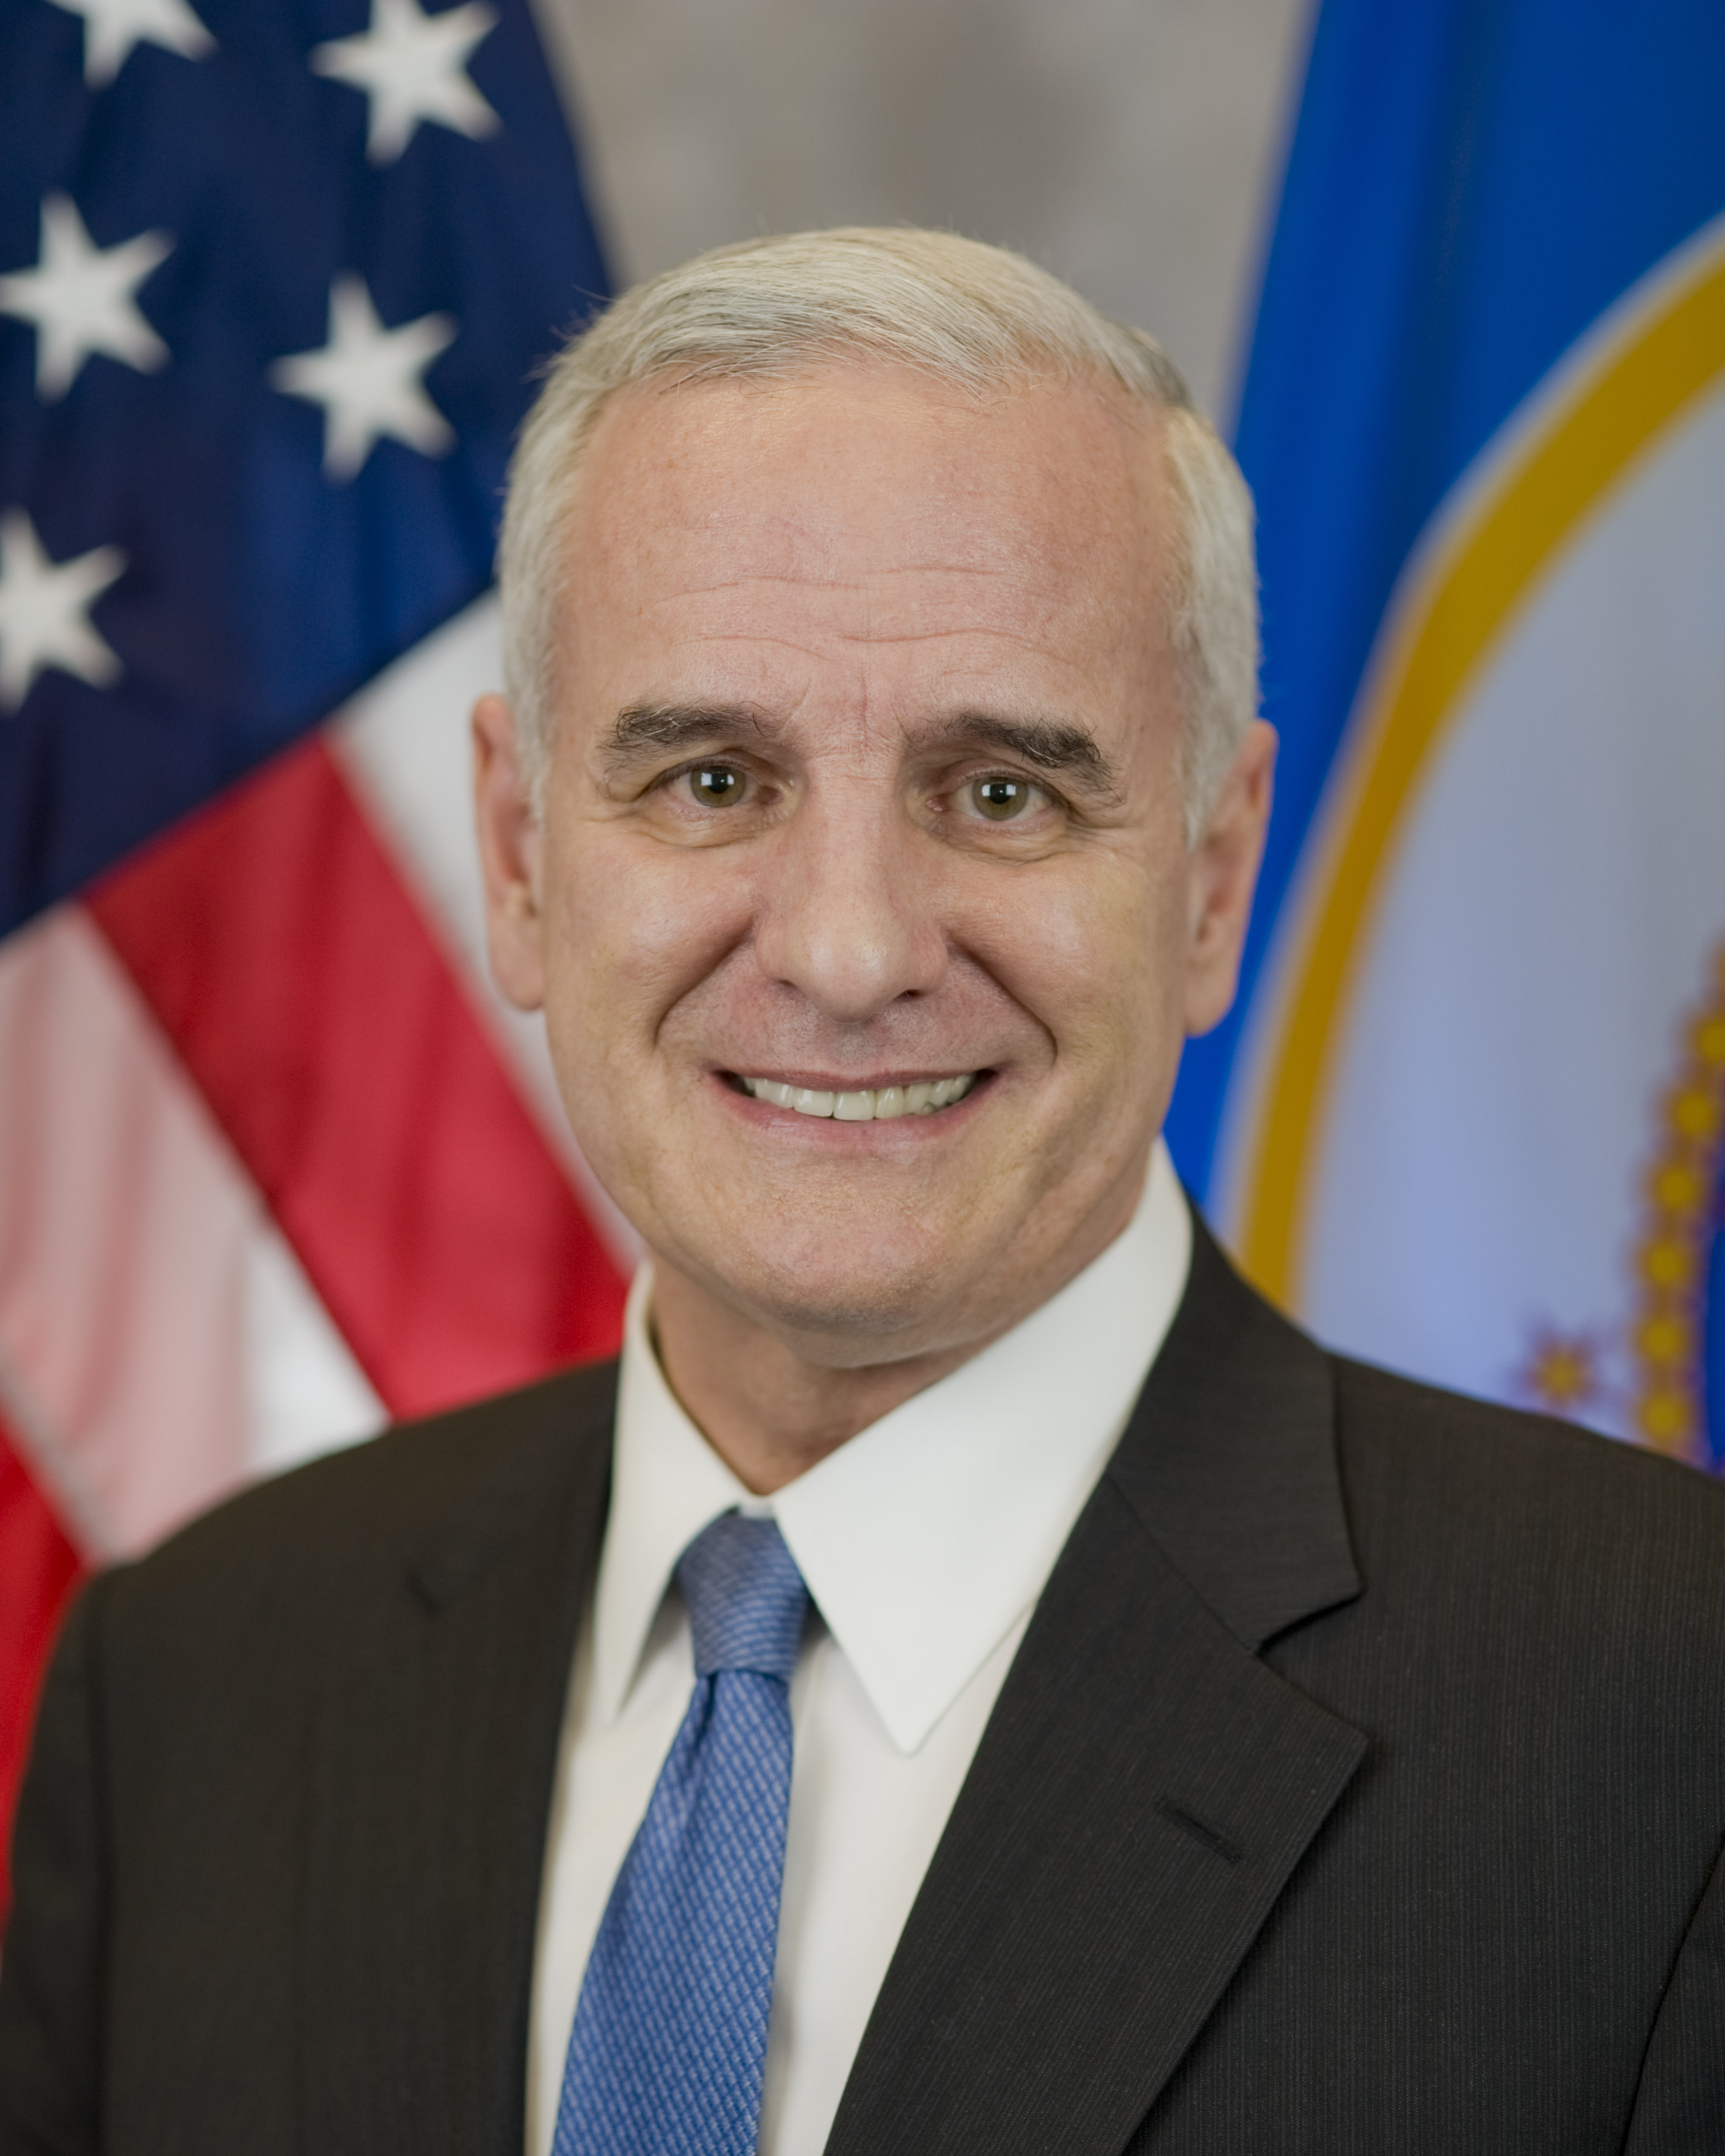 minnesota governor to speak at 2017 cyber security summit newswire